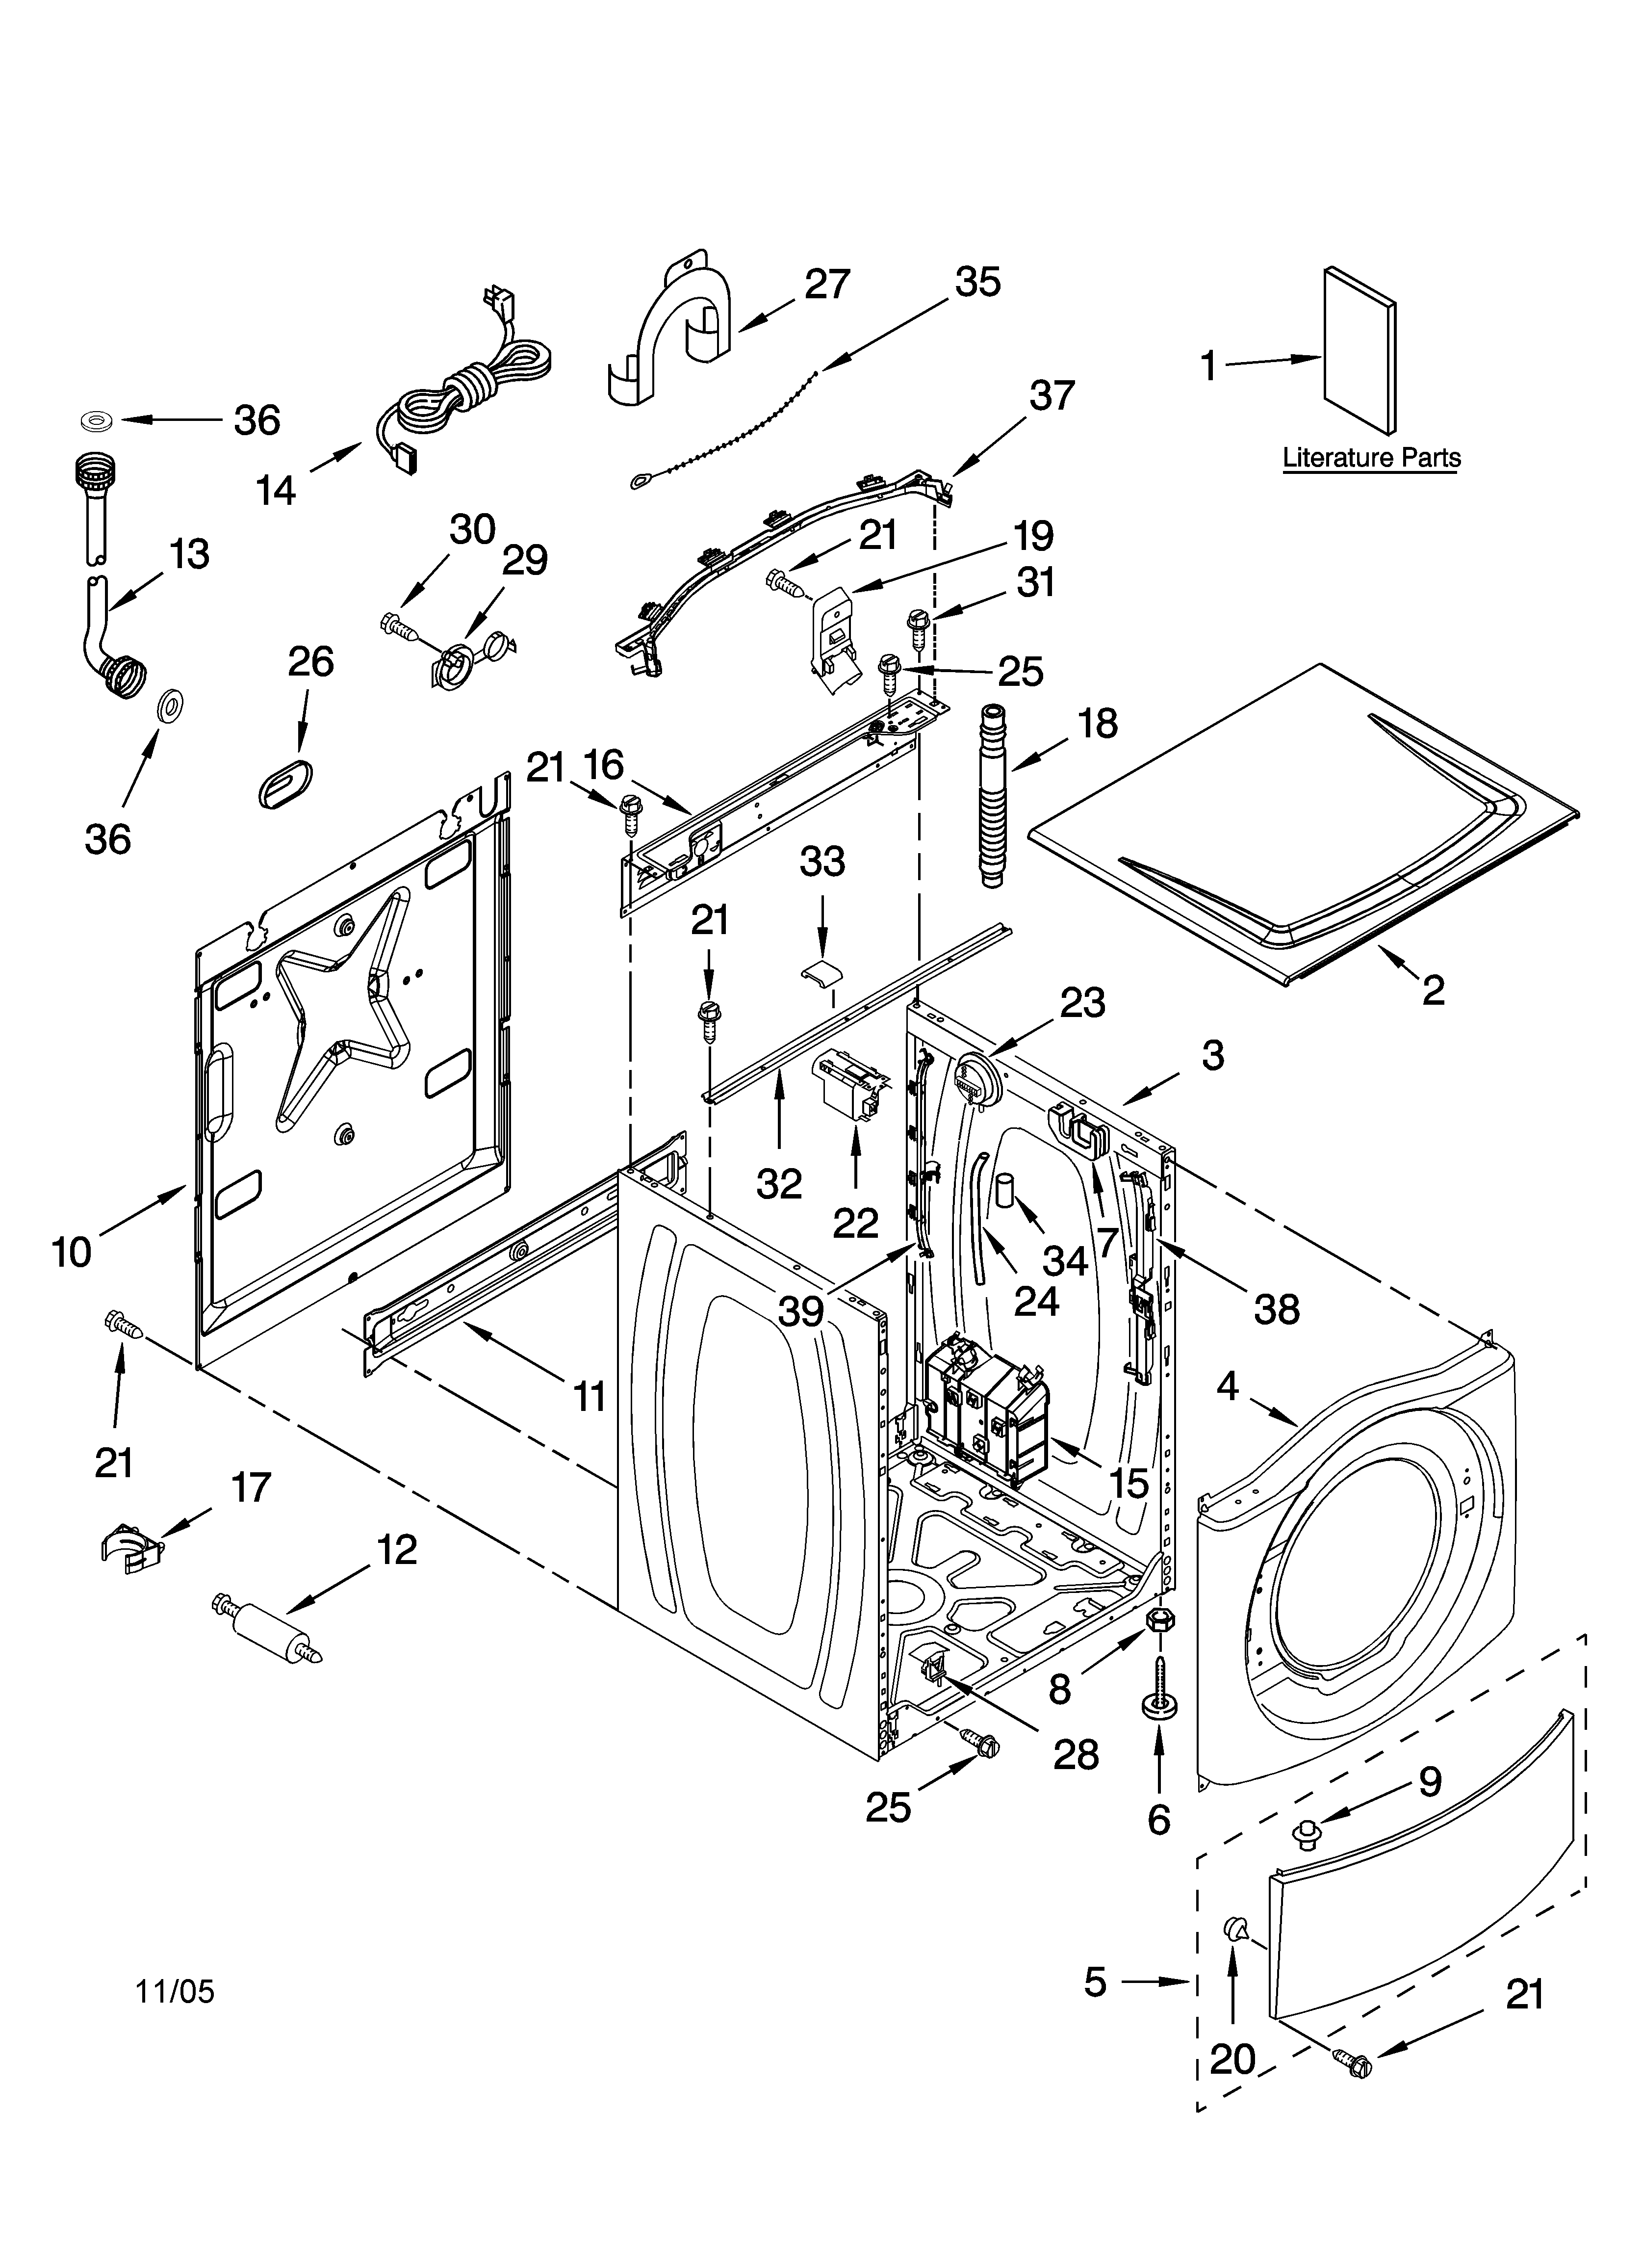 Kenmore 110 Washing Machine Wiring Diagram also Whirlpool Thermal Fuse 91 Wp3392519 Ap6008325 as well Washing Machine Or Washer Dryer Is Not Spinning Draining How To Fix furthermore Clothes Dryer Repair 5 together with Maytag Atlantis Washer Parts Diagram. on wiring diagram for maytag dryer motor